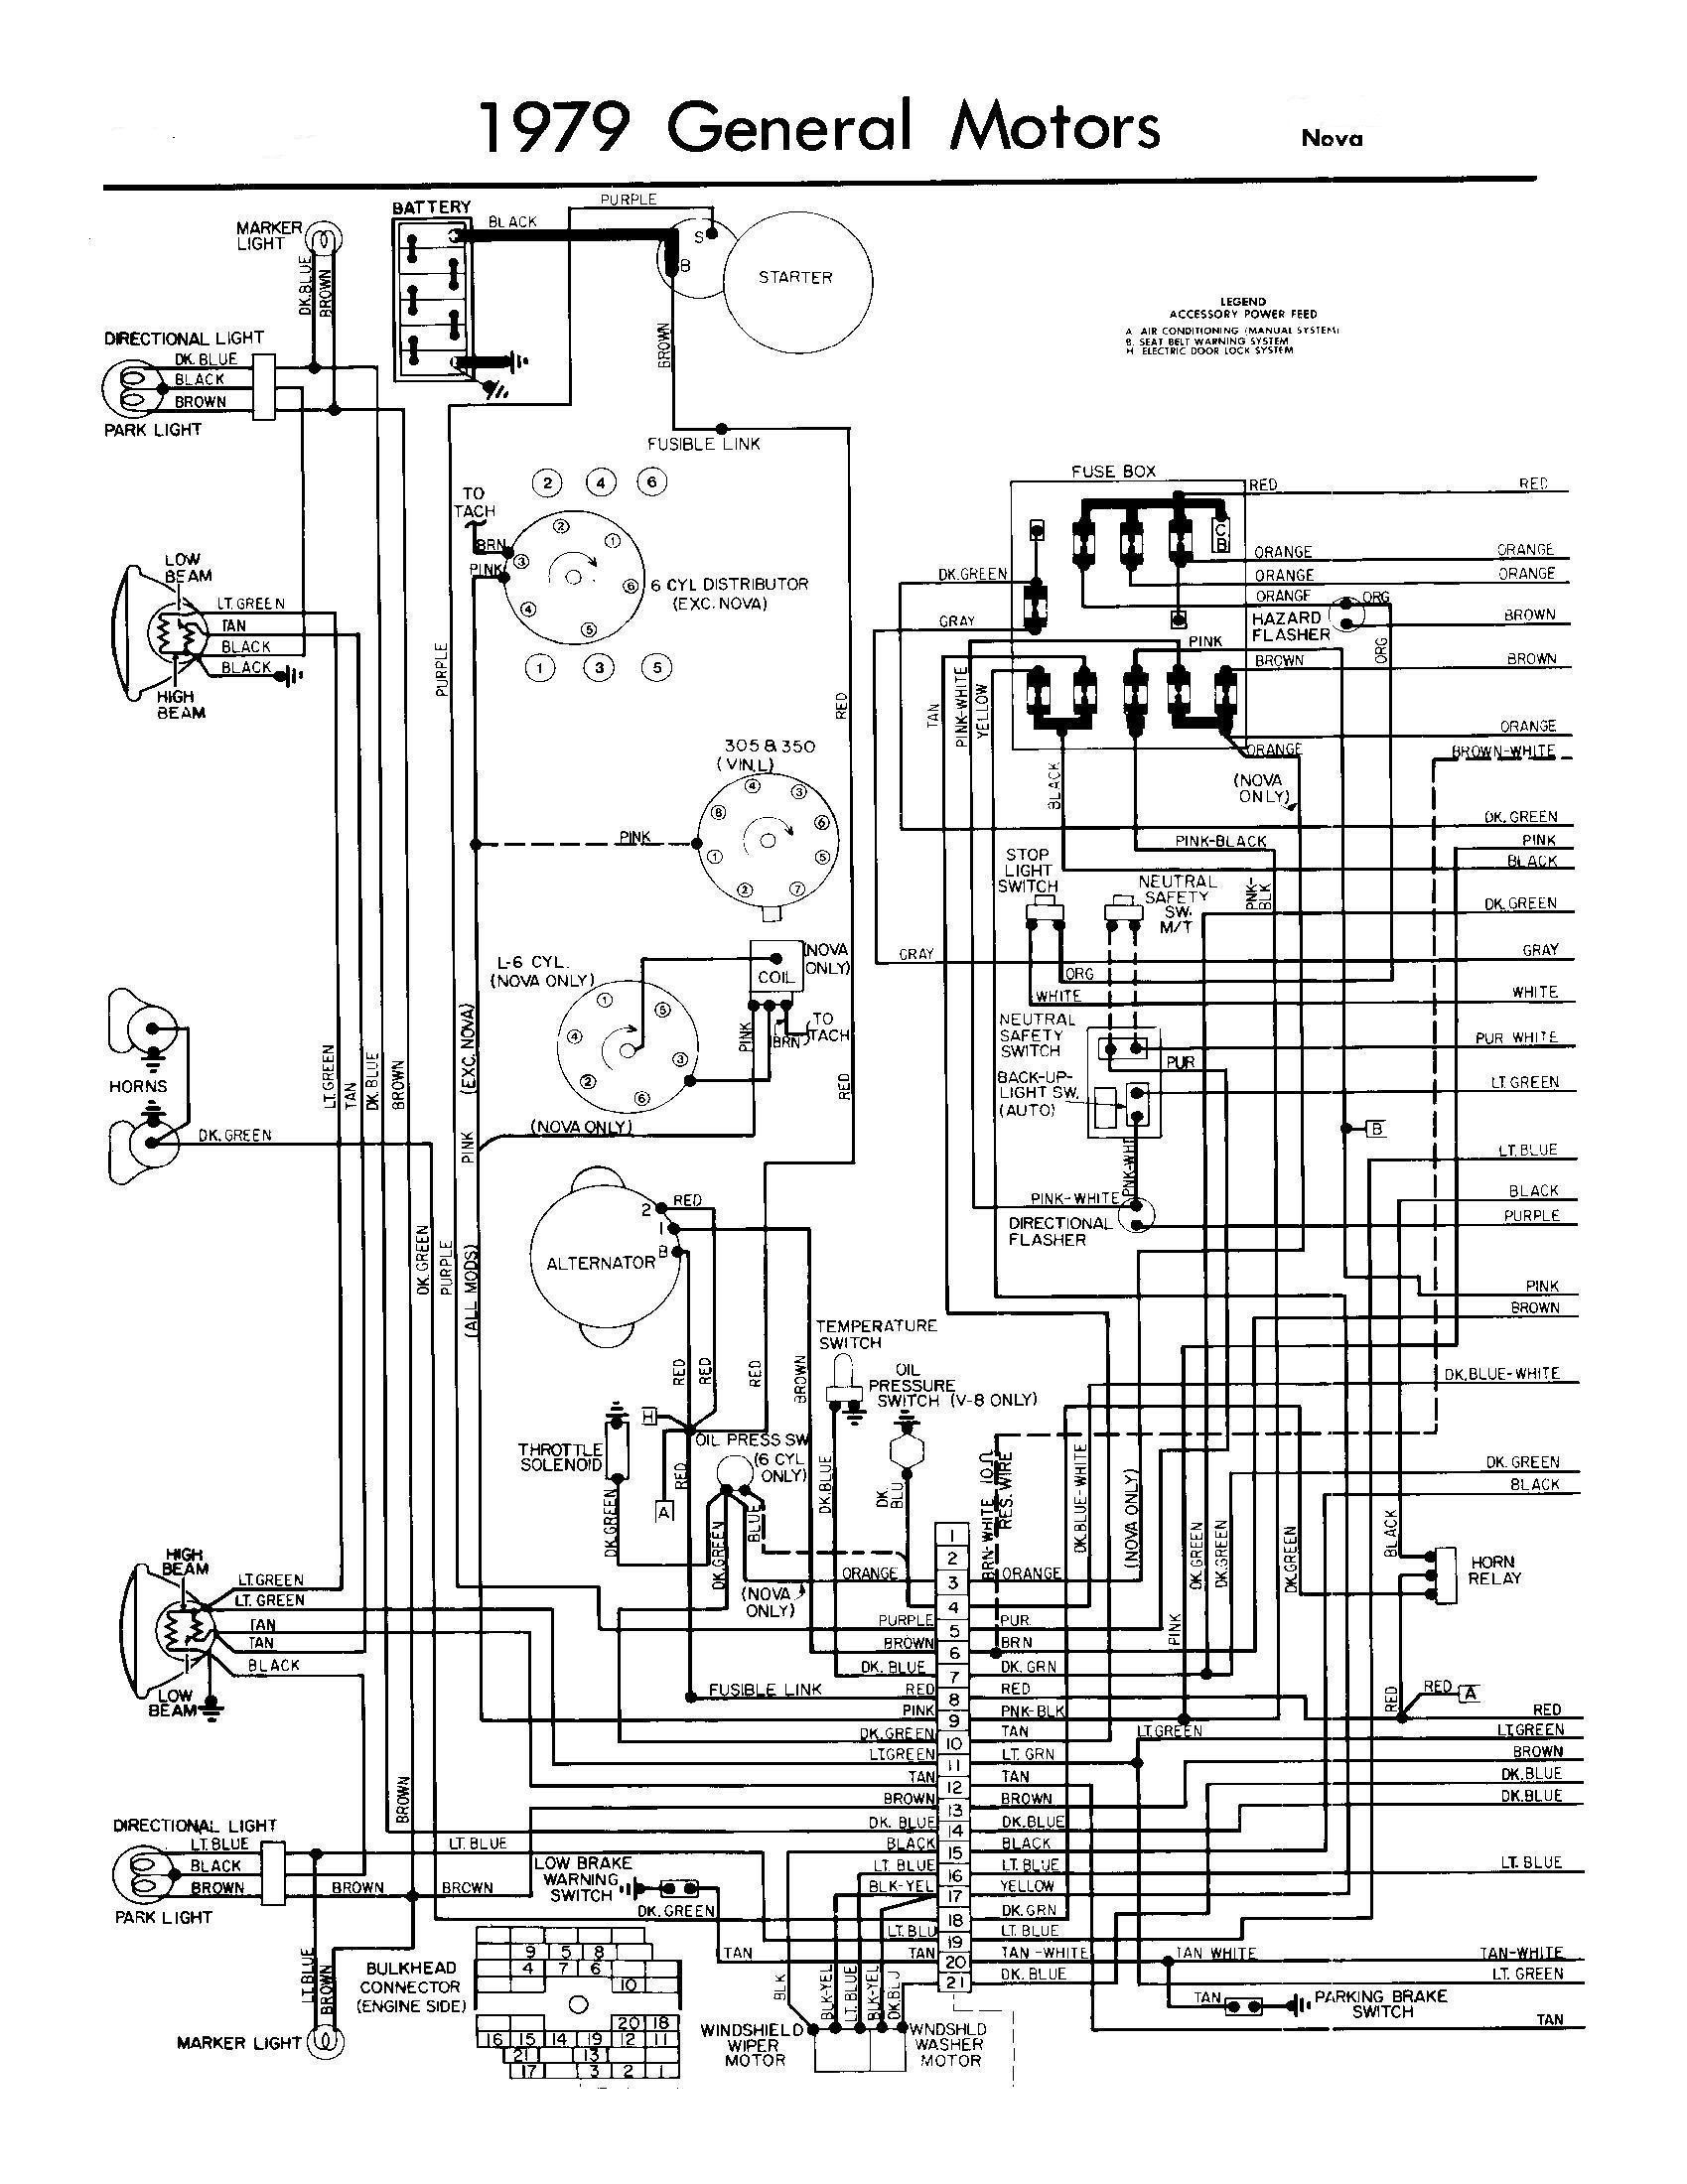 1985 c10 wiring diagram wiring diagrams1979 c10 wiring diagram 20 lwe zionsnowboards de \\u20221982 chevy c10 wiring diagram wiring diagram